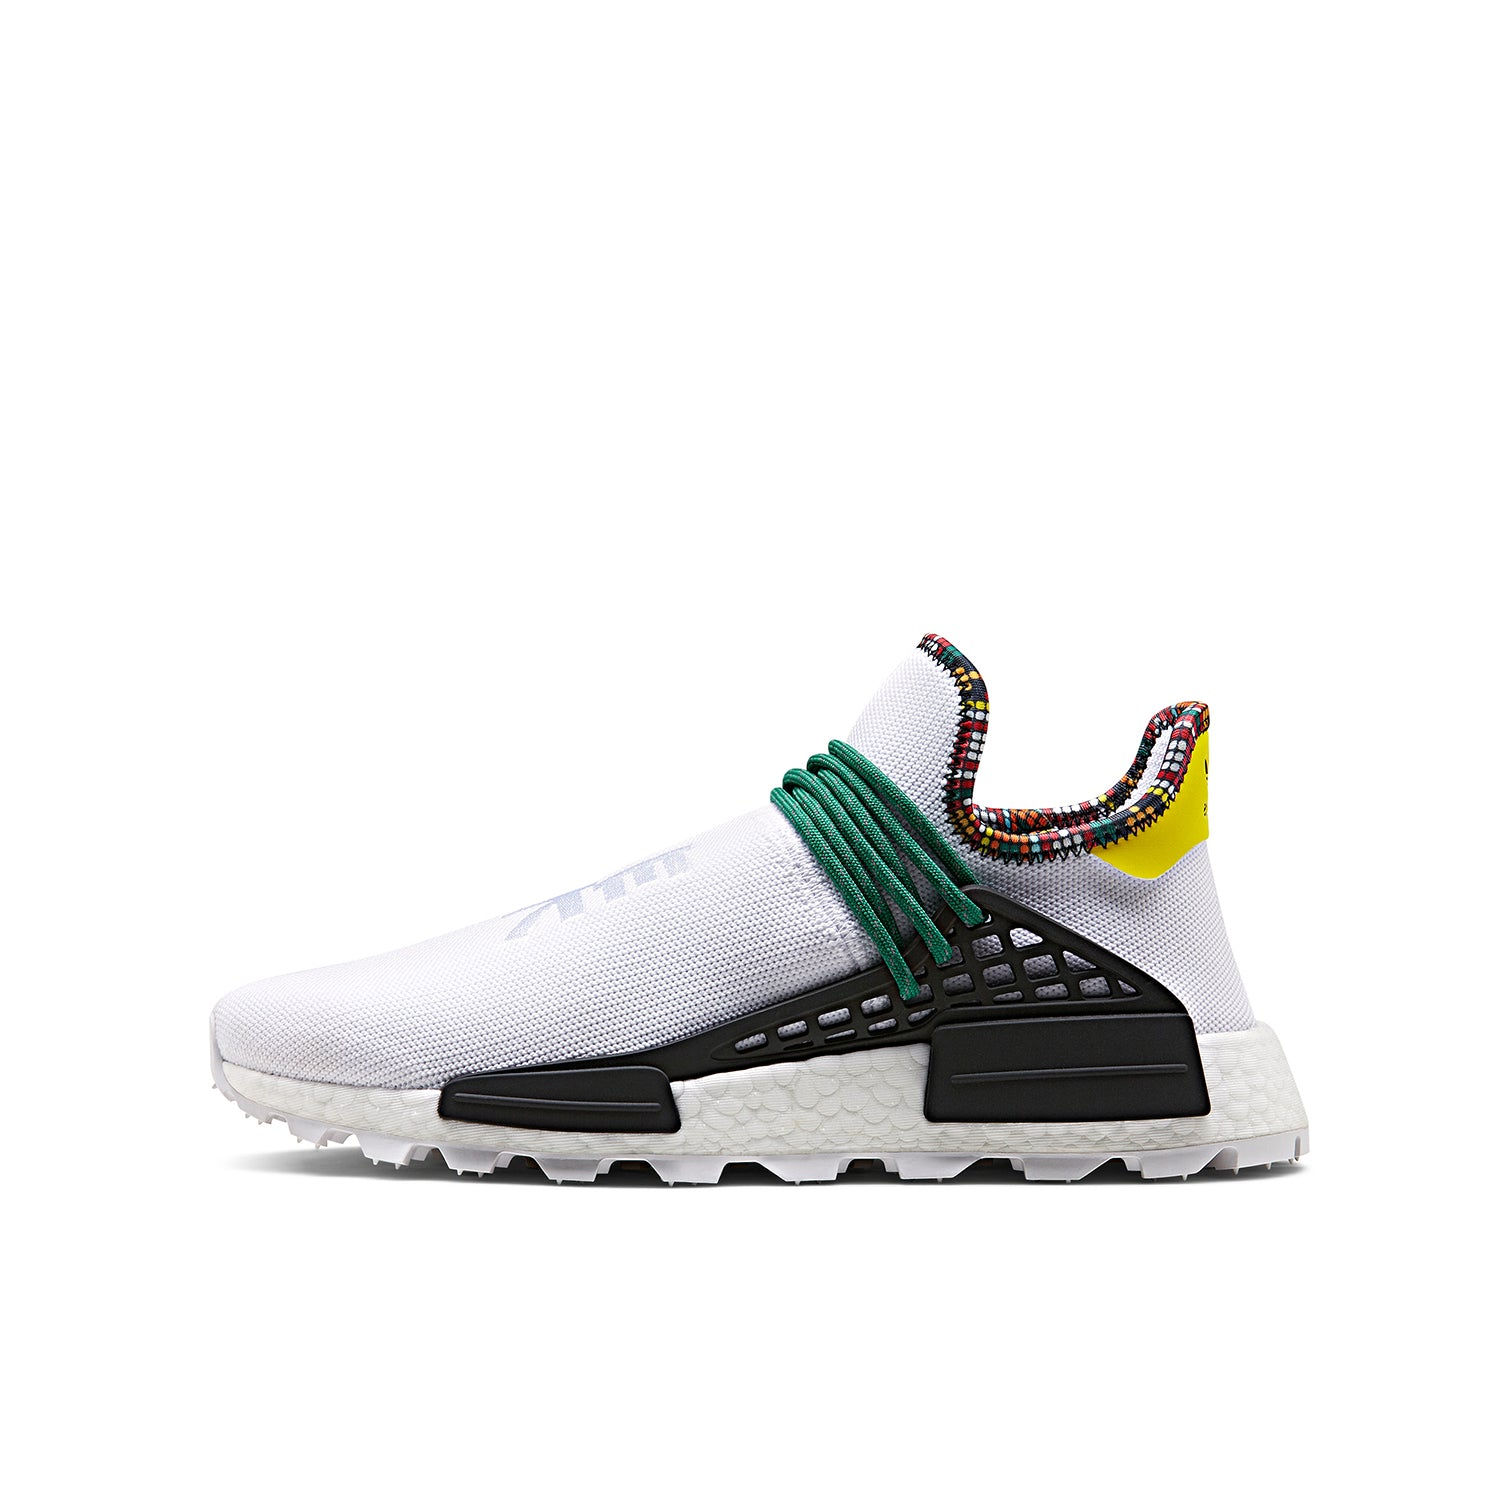 the latest d115b 5b1cc adidas Originals x Pharrell Williams 'INSPIRATION' Solar HU NMD White